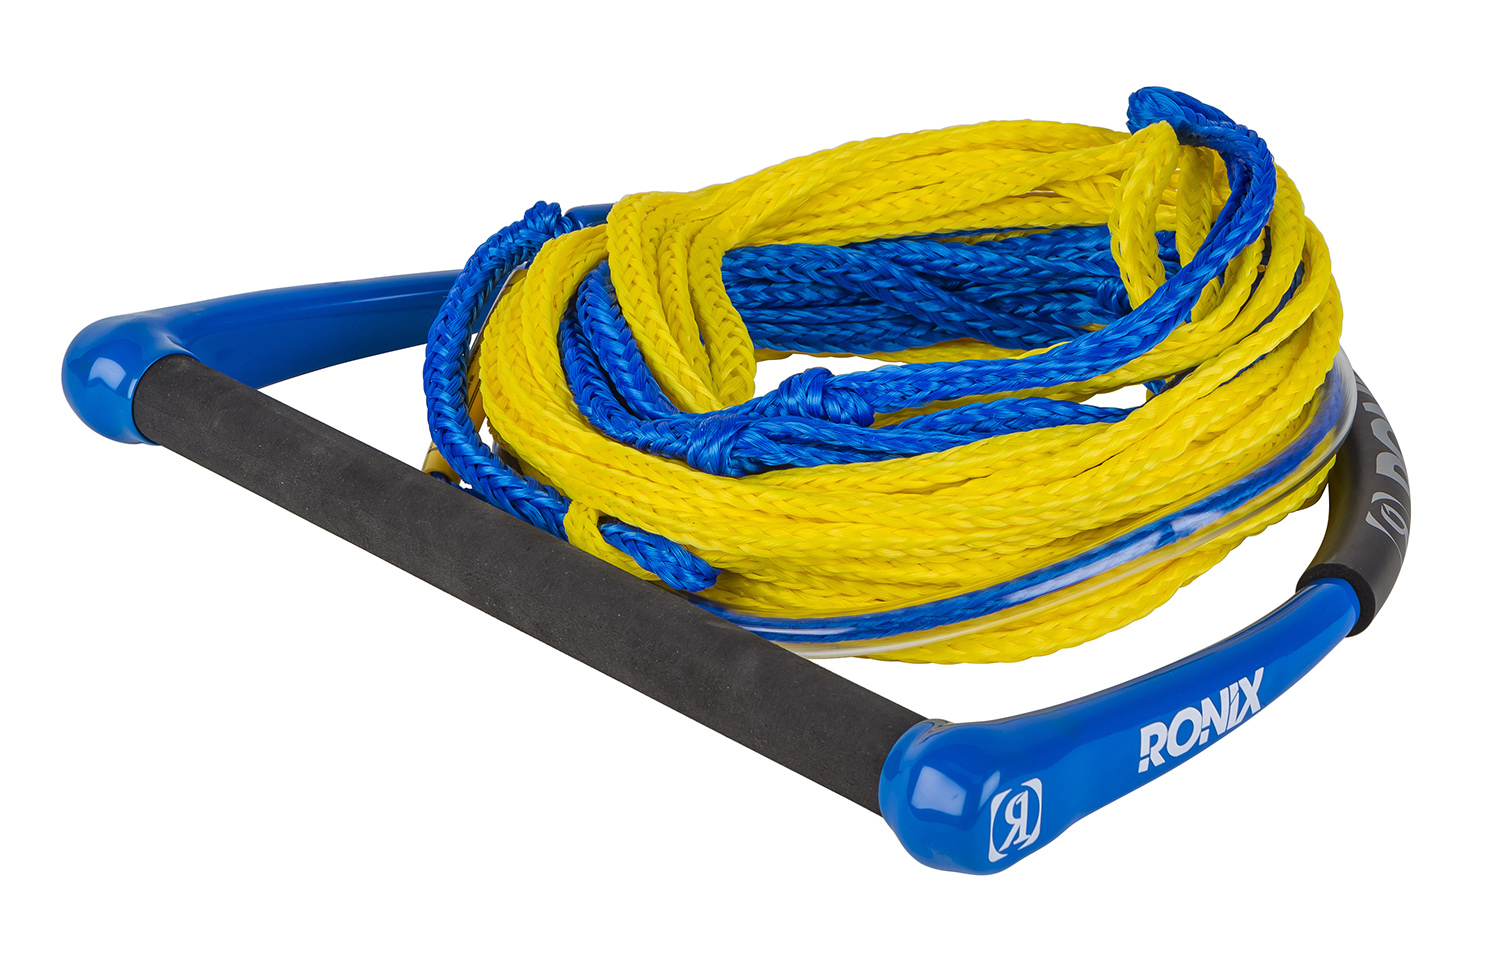 COMBO 1.0 TPR GRIP W/65 FT 4 PE ROPE PACKAGE RONIX 2019